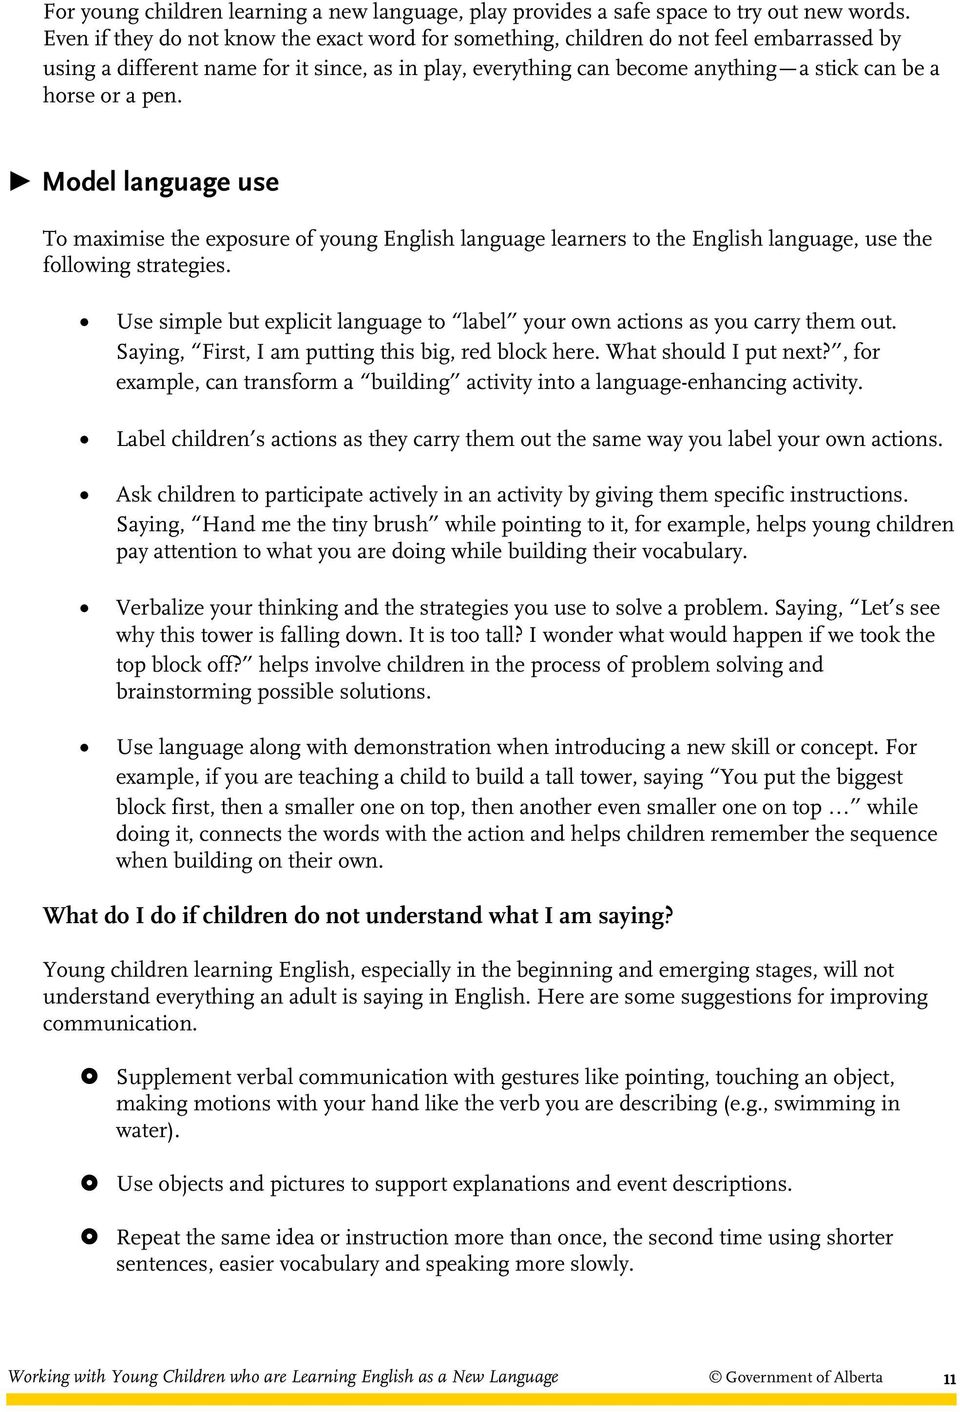 pen. Model language use To maximise the exposure of young English language learners to the English language, use the following strategies.